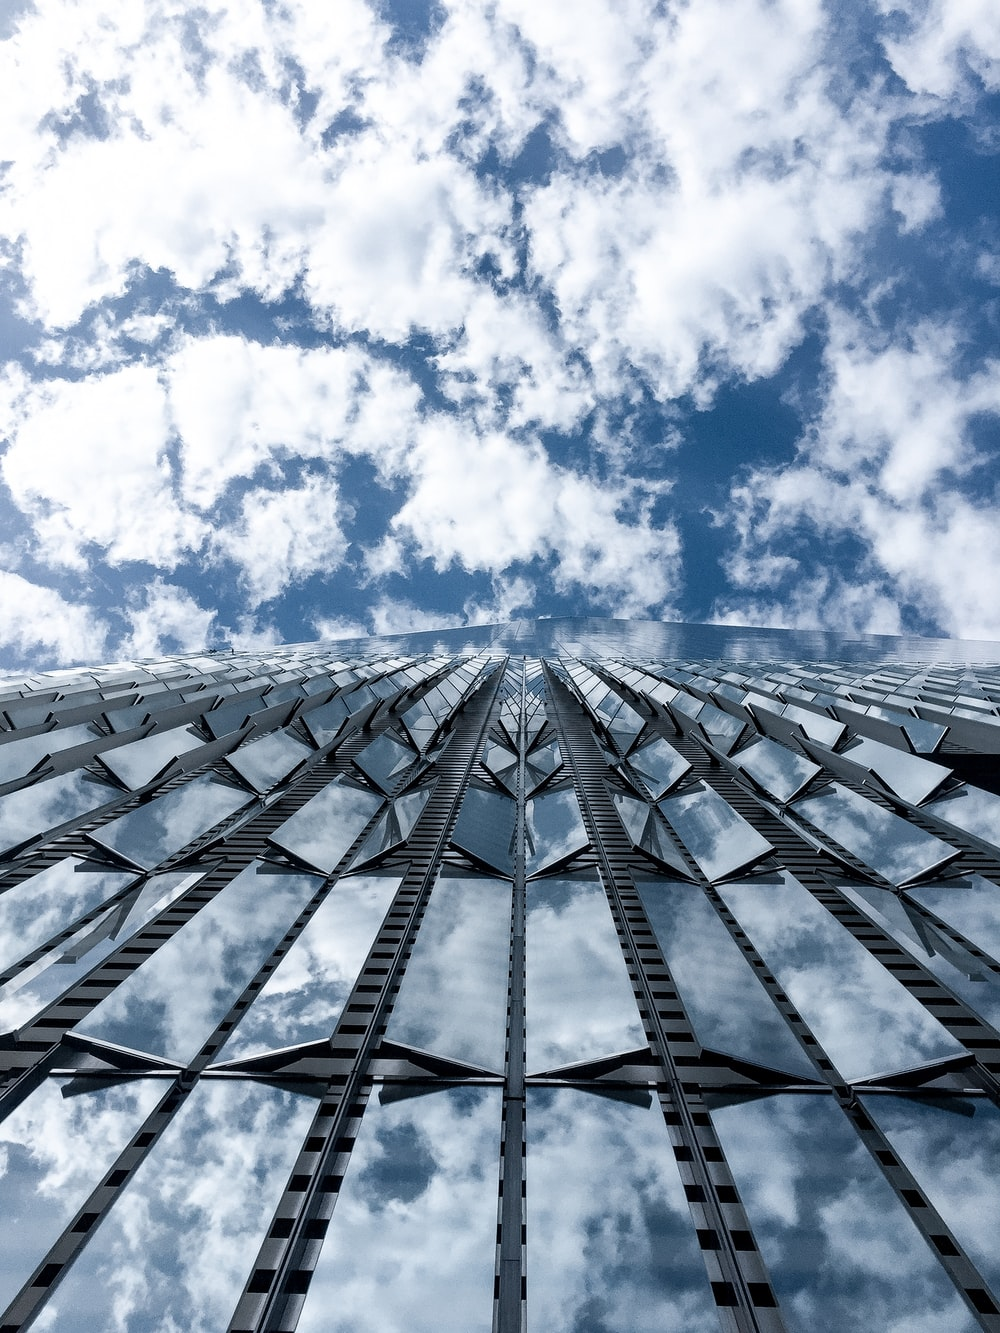 close-up photography of high-rise building under cloudy sky during daytime